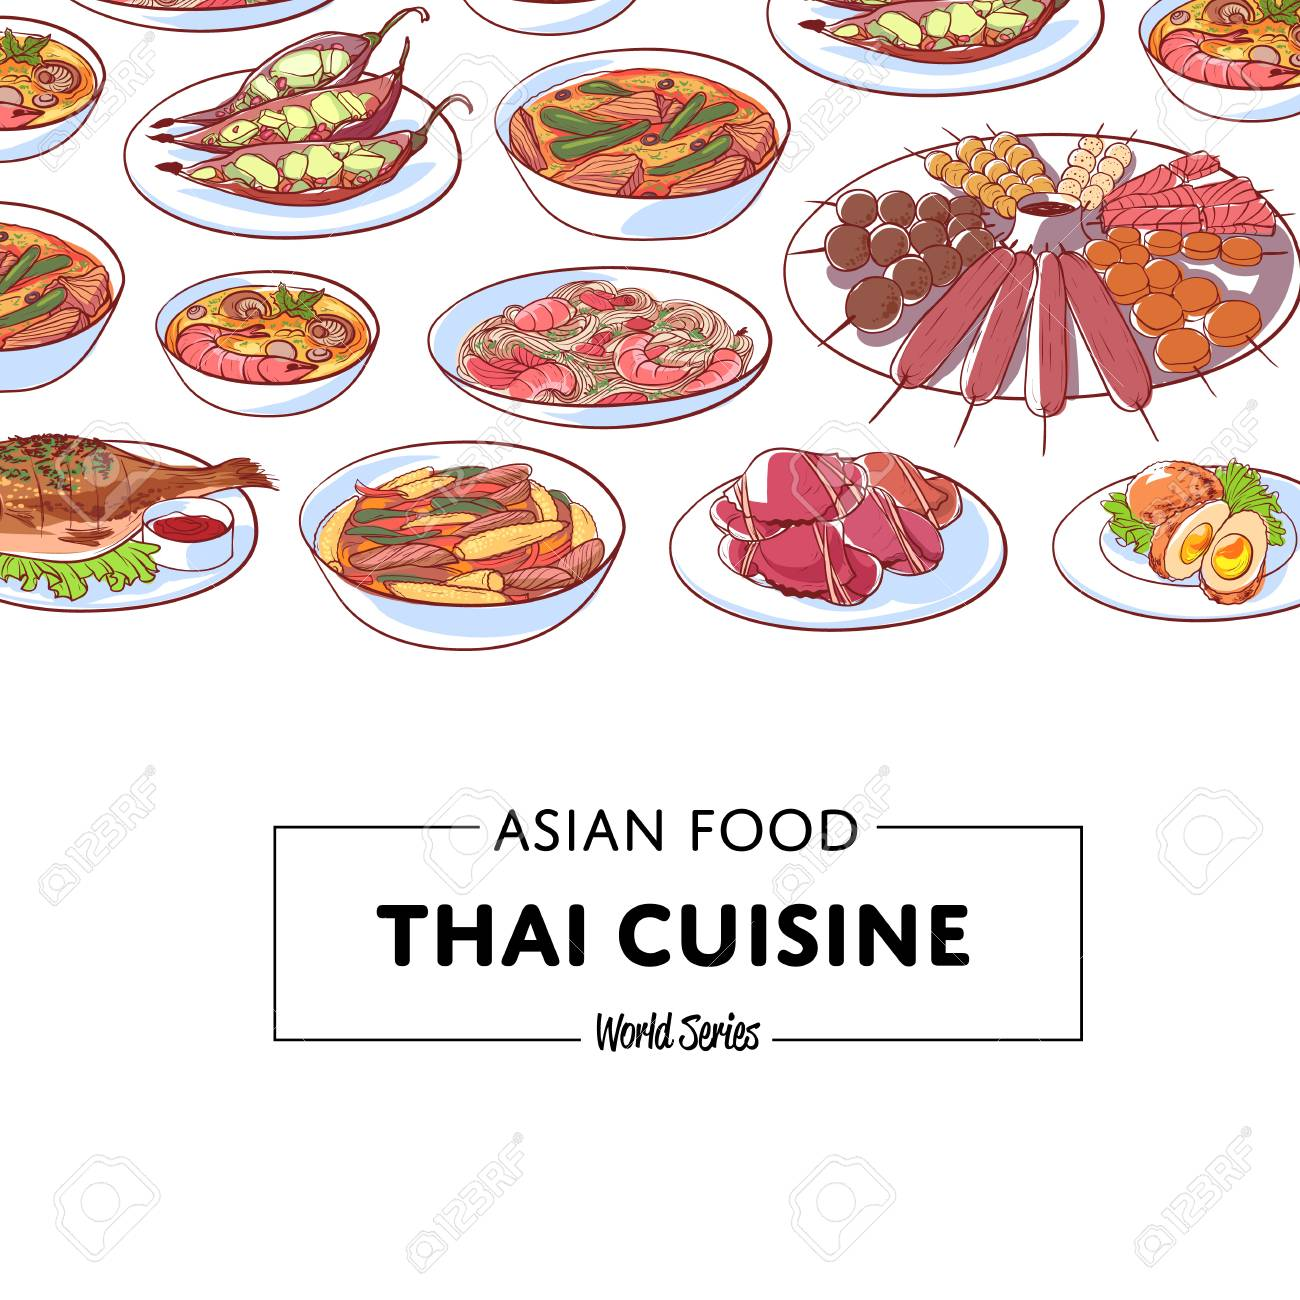 Element Cuisine Thai Cuisine Poster With Famous Asian Dishes Restaurant Menu